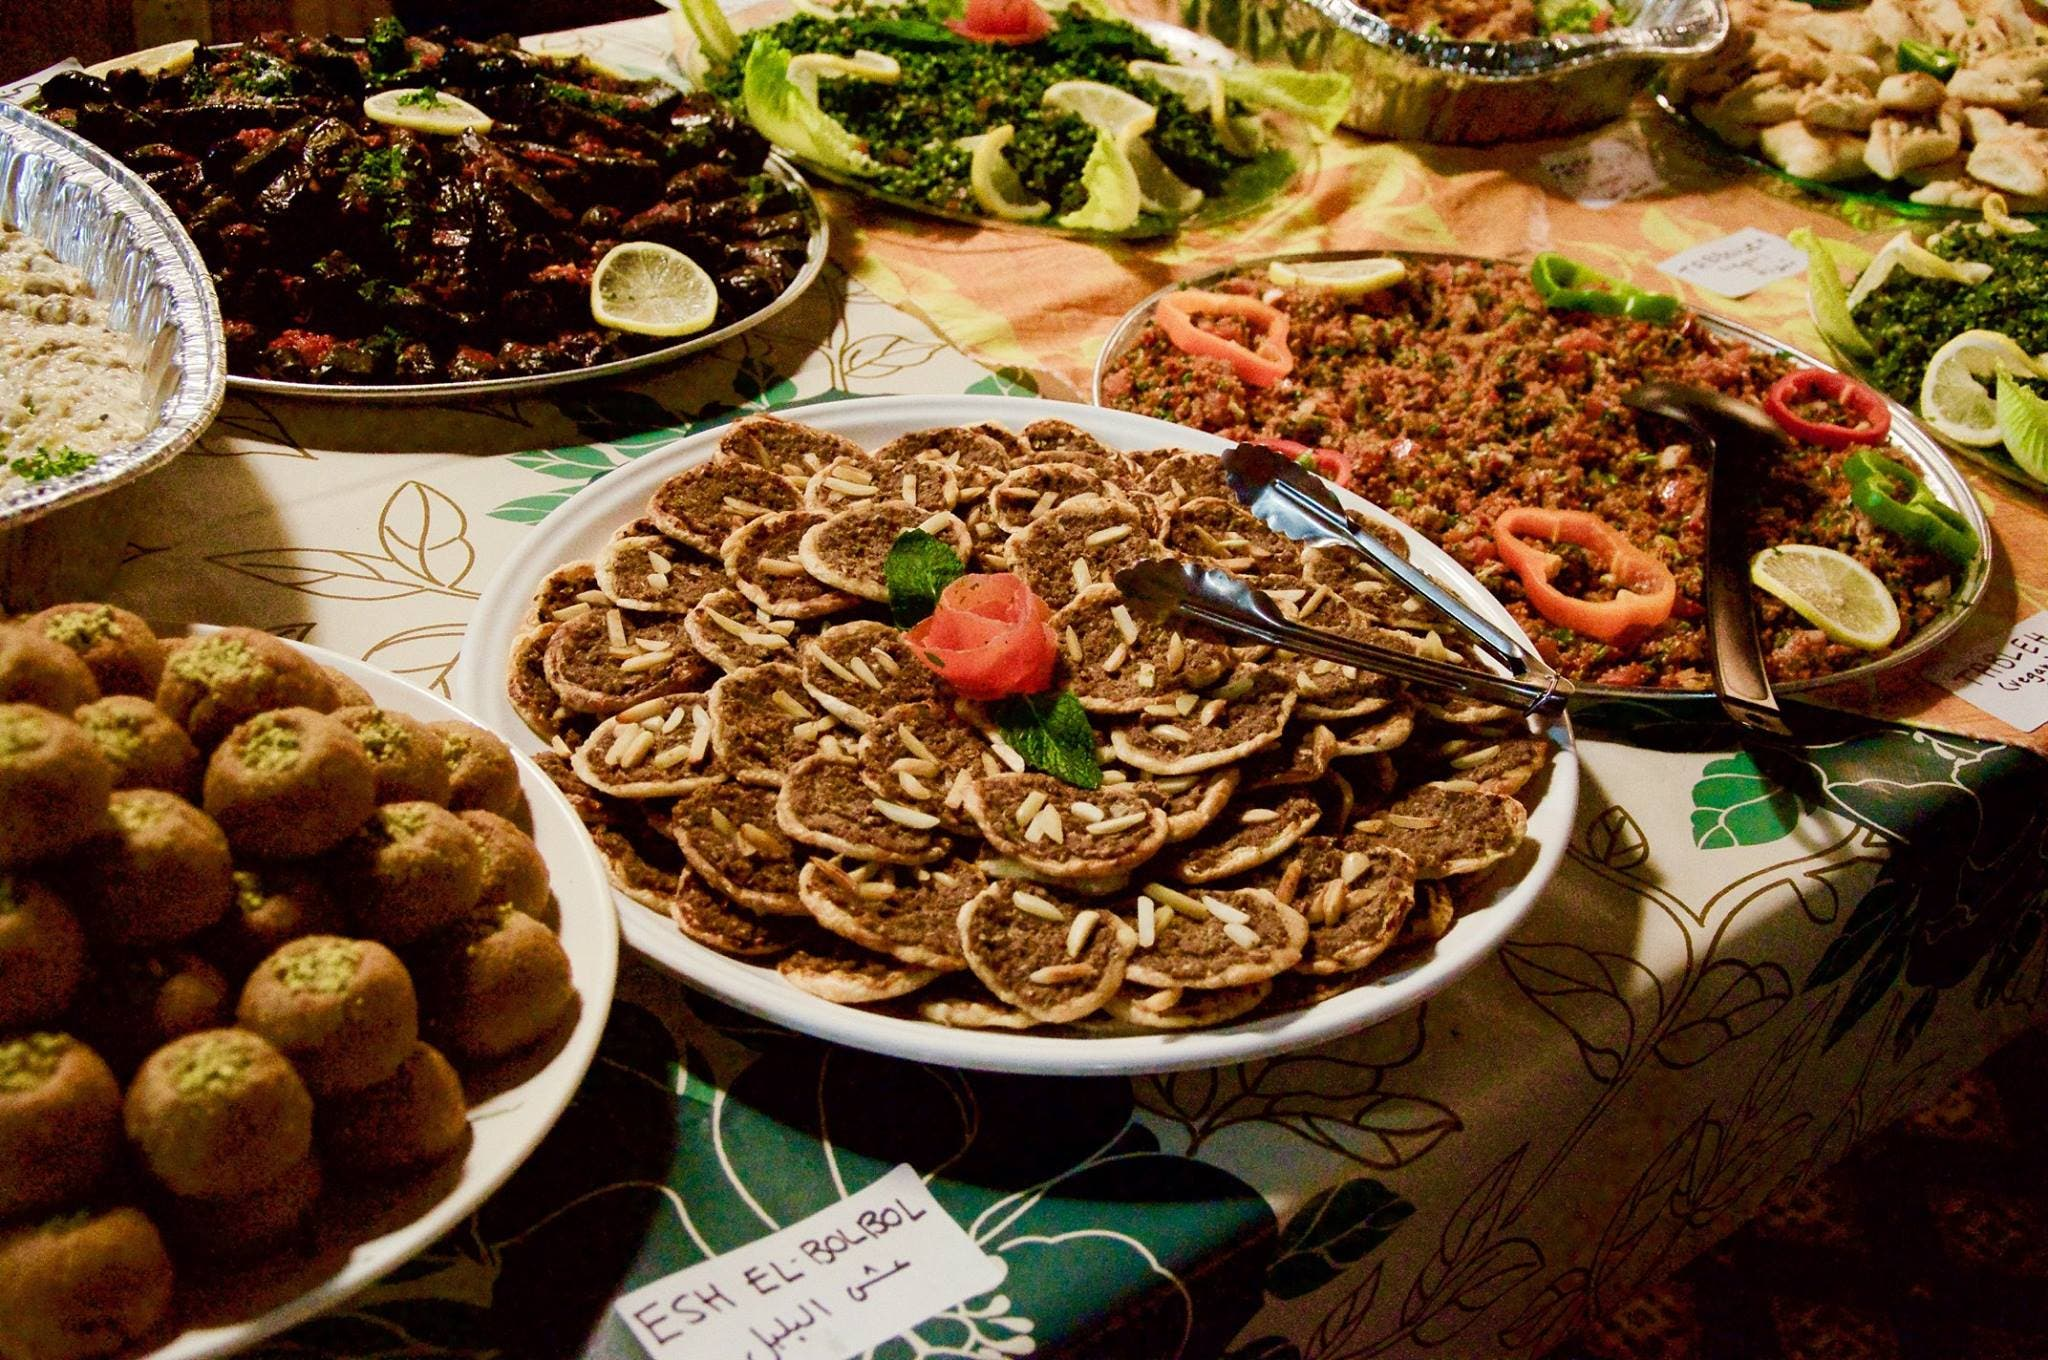 A dinner is hosted around once every four months and at a different location each time. (Photo courtesy: Dima Yassine)